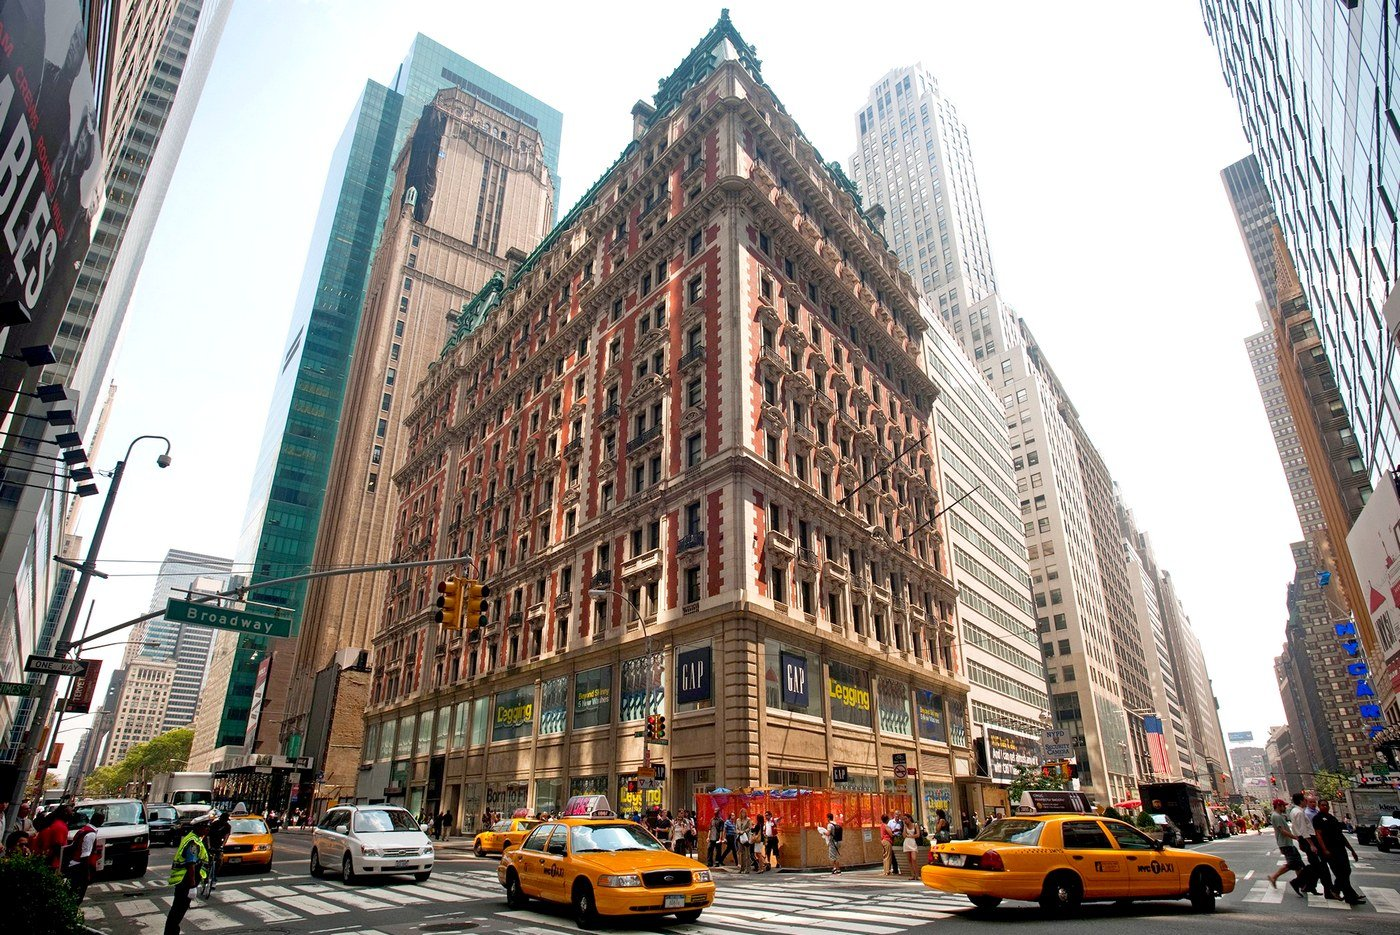 New York Hotel Hotels Features List